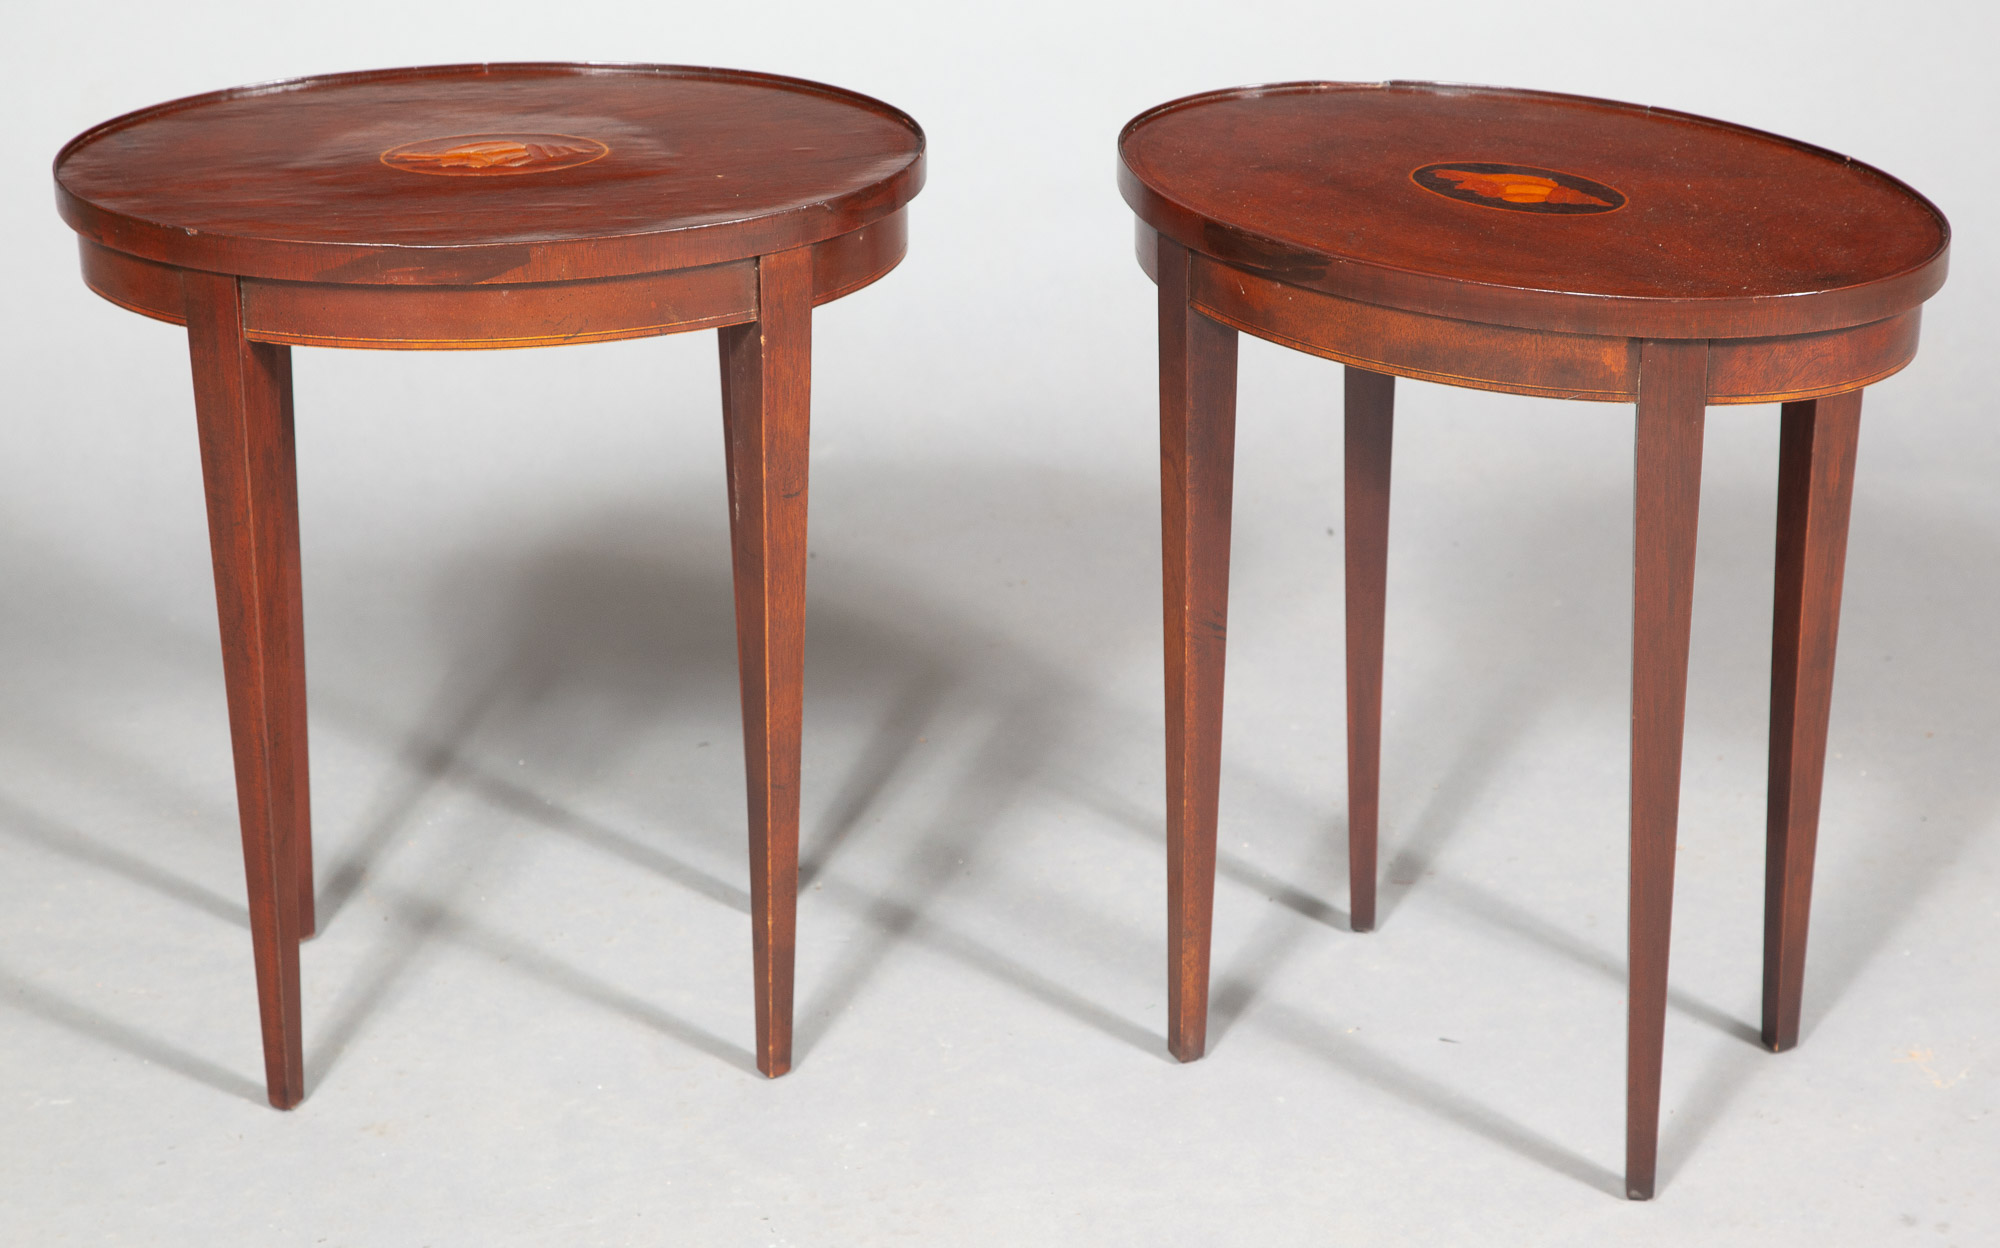 Lot image - Near Pair of George III Style Inlaid Mahogany Occasional Tables by Baker